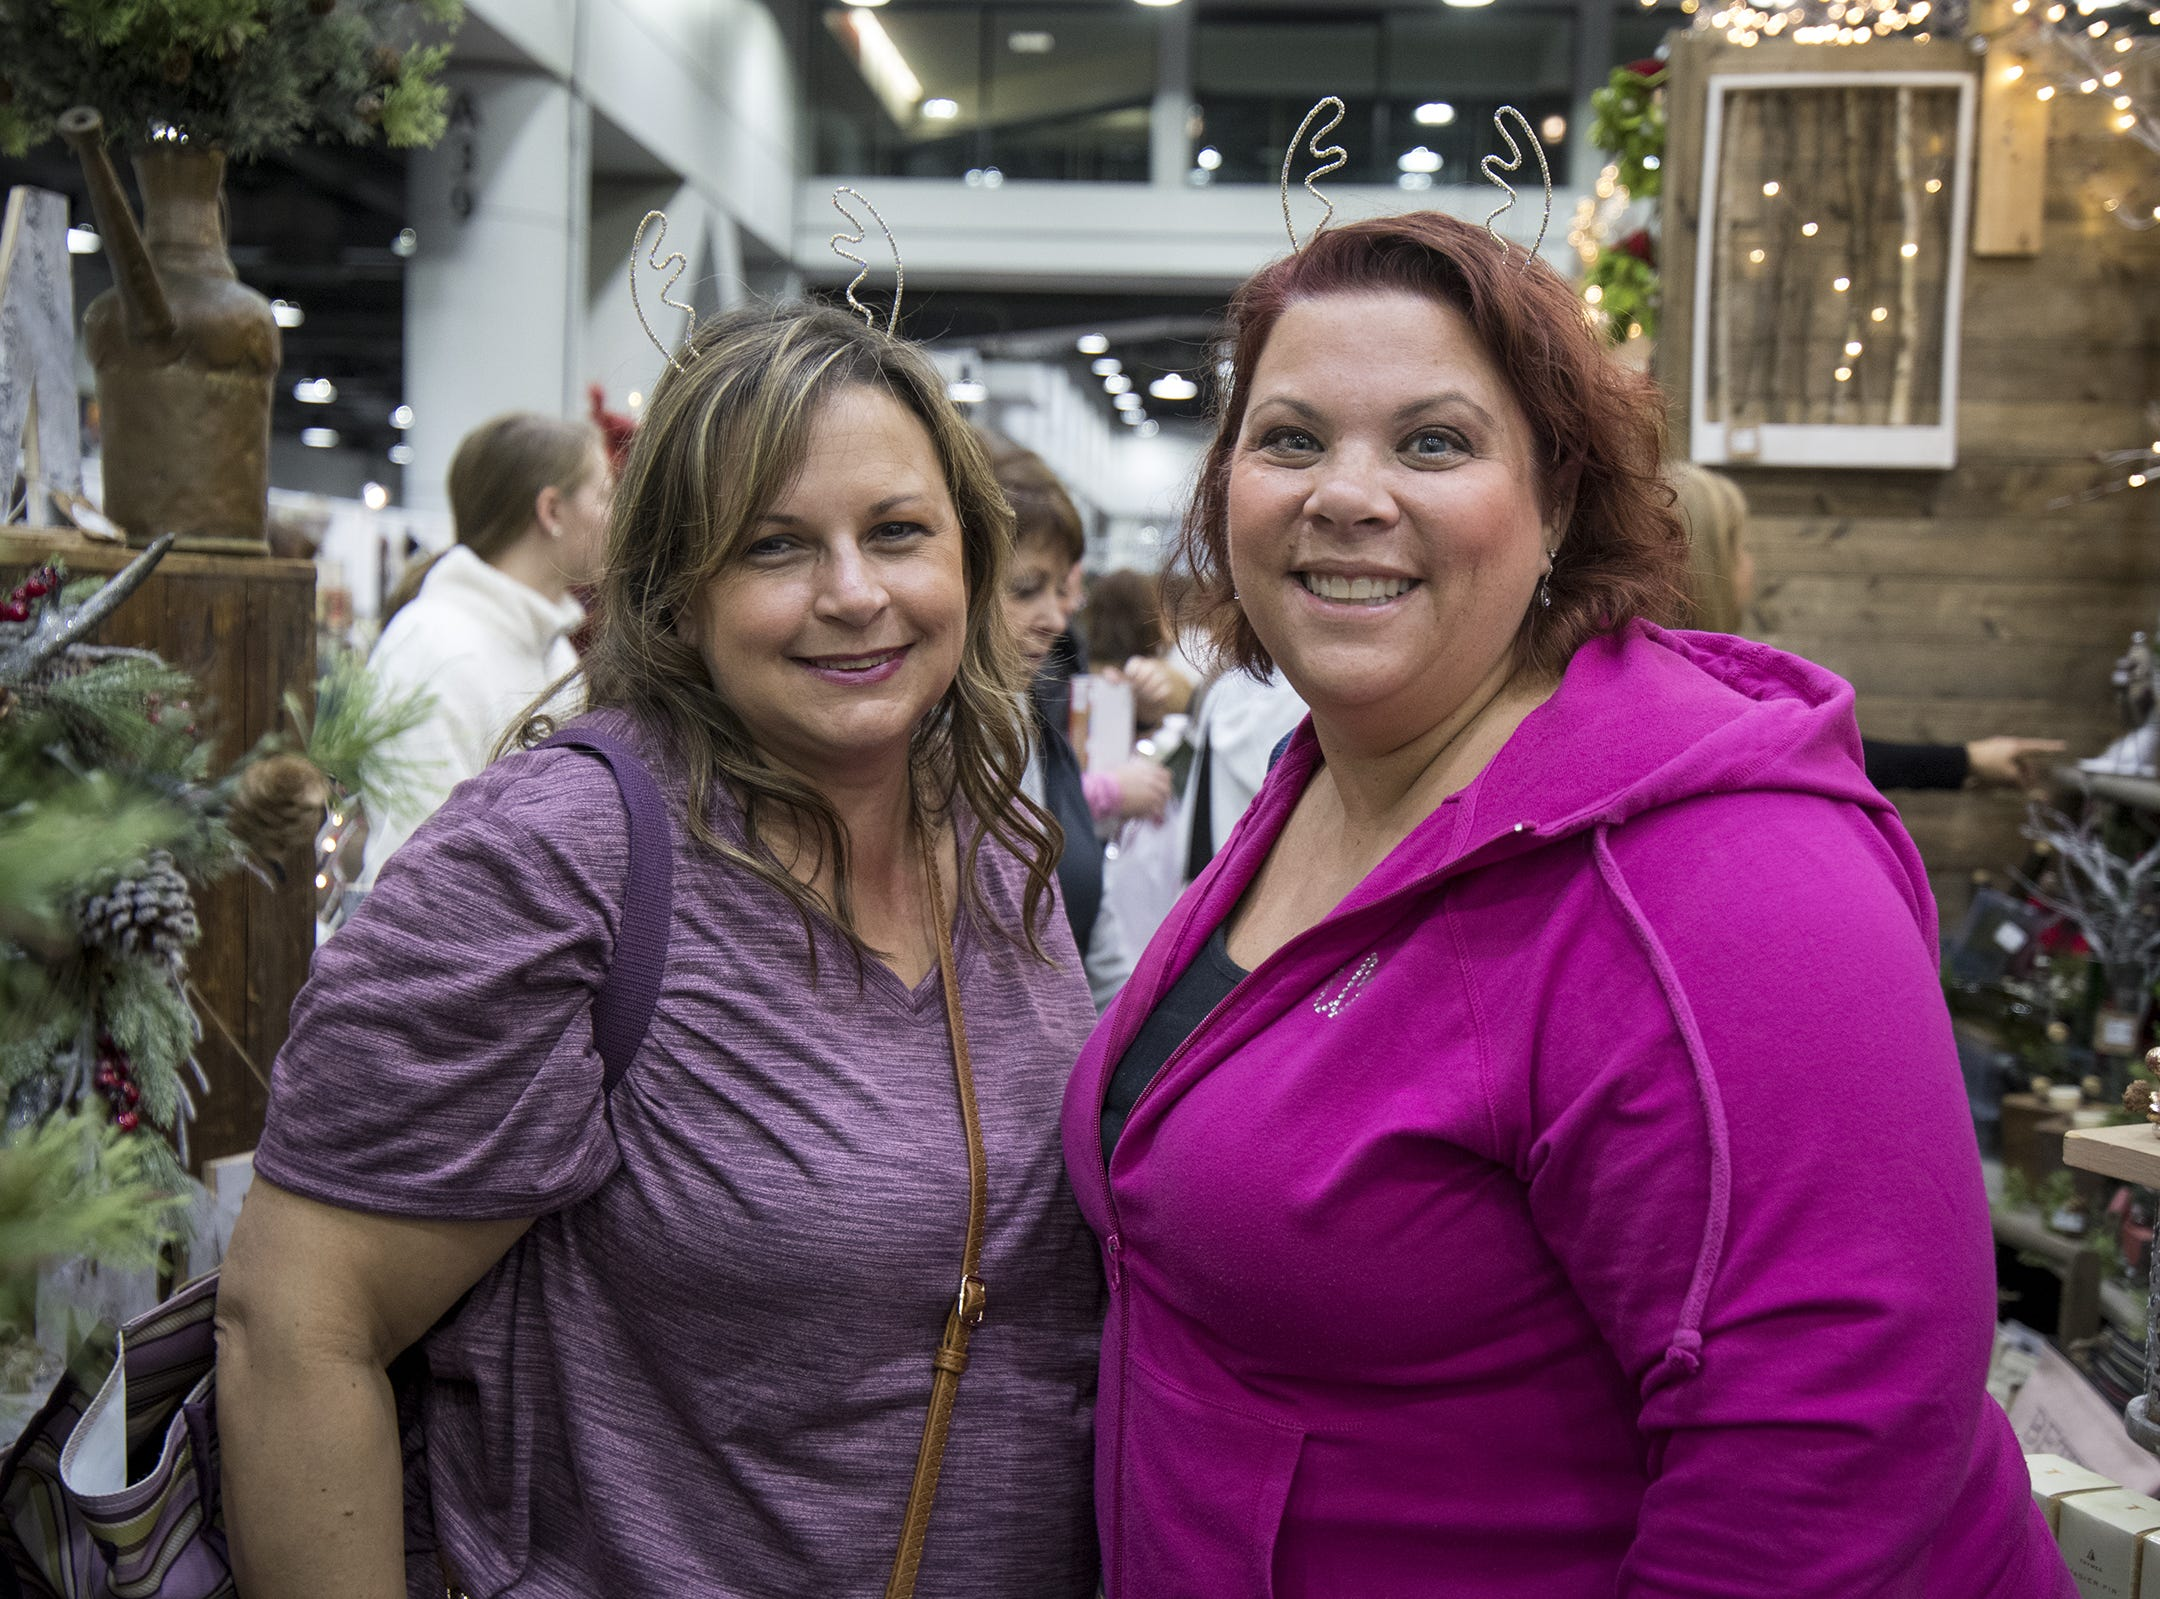 Vanessa Cline of Greendale, Indiana and Nikki Beninghaus of Bridgetown check out a booth during the Greater Cincinnati Holiday Market at the Duke Energy Center Friday, November 2, 2018 in Cincinnati, Ohio. The event runs through Sunday, November 4.